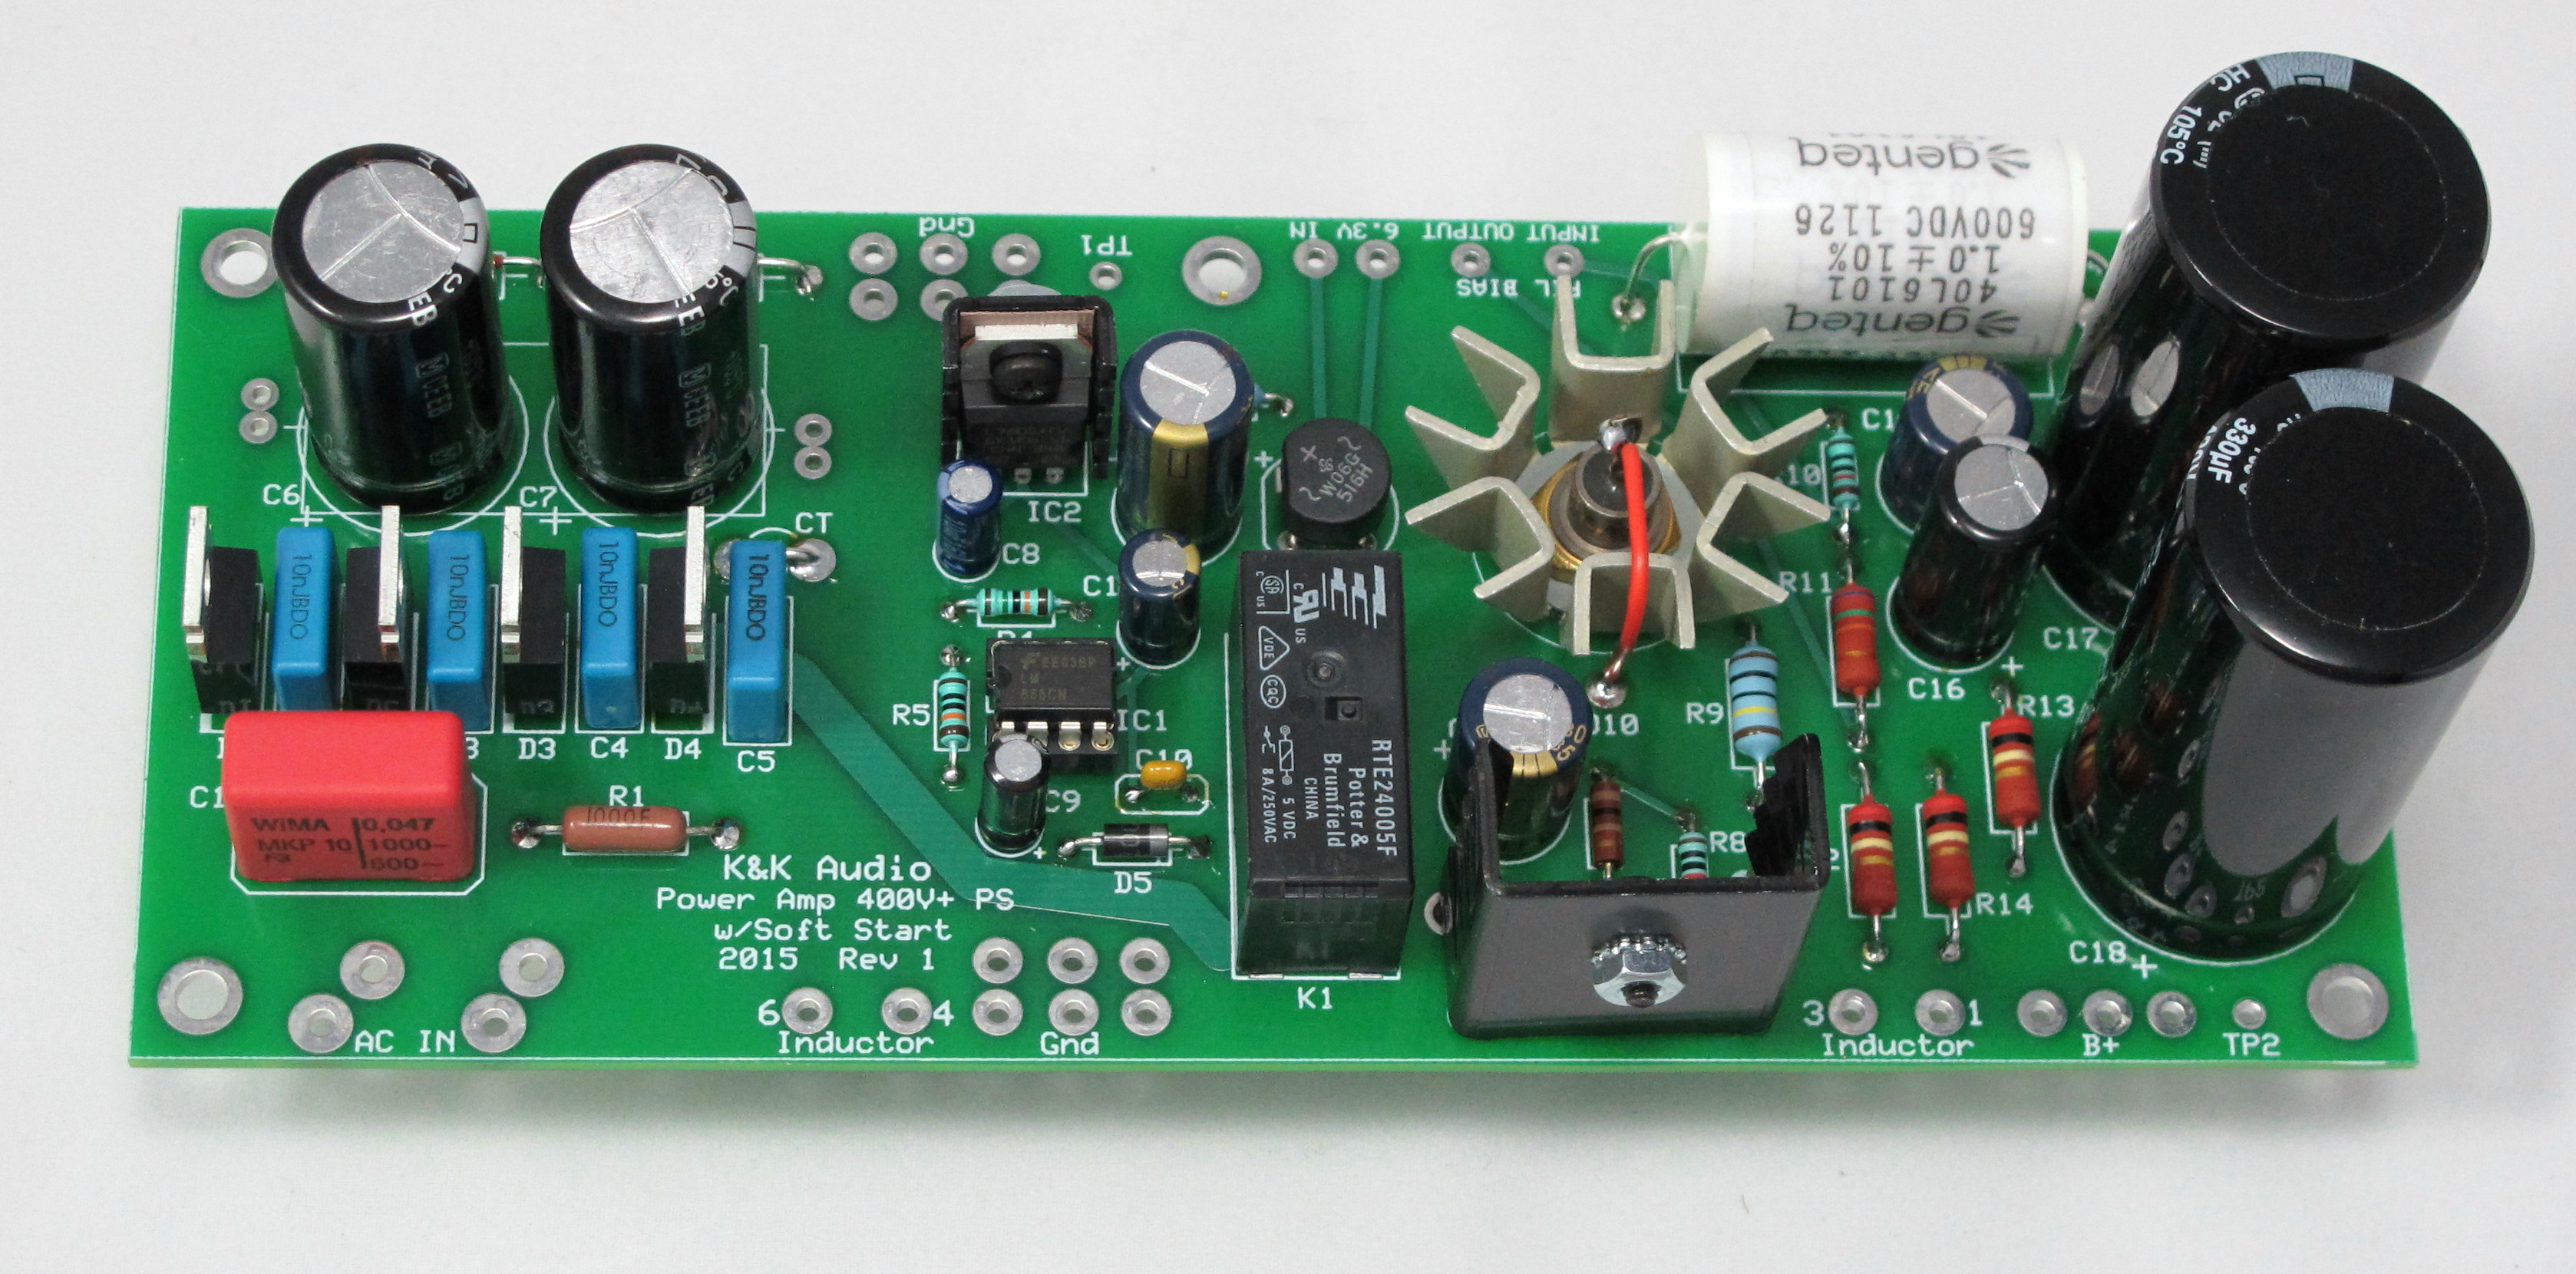 Kk Audio Power Amplifier Supply Electronic Circuit Project Higher